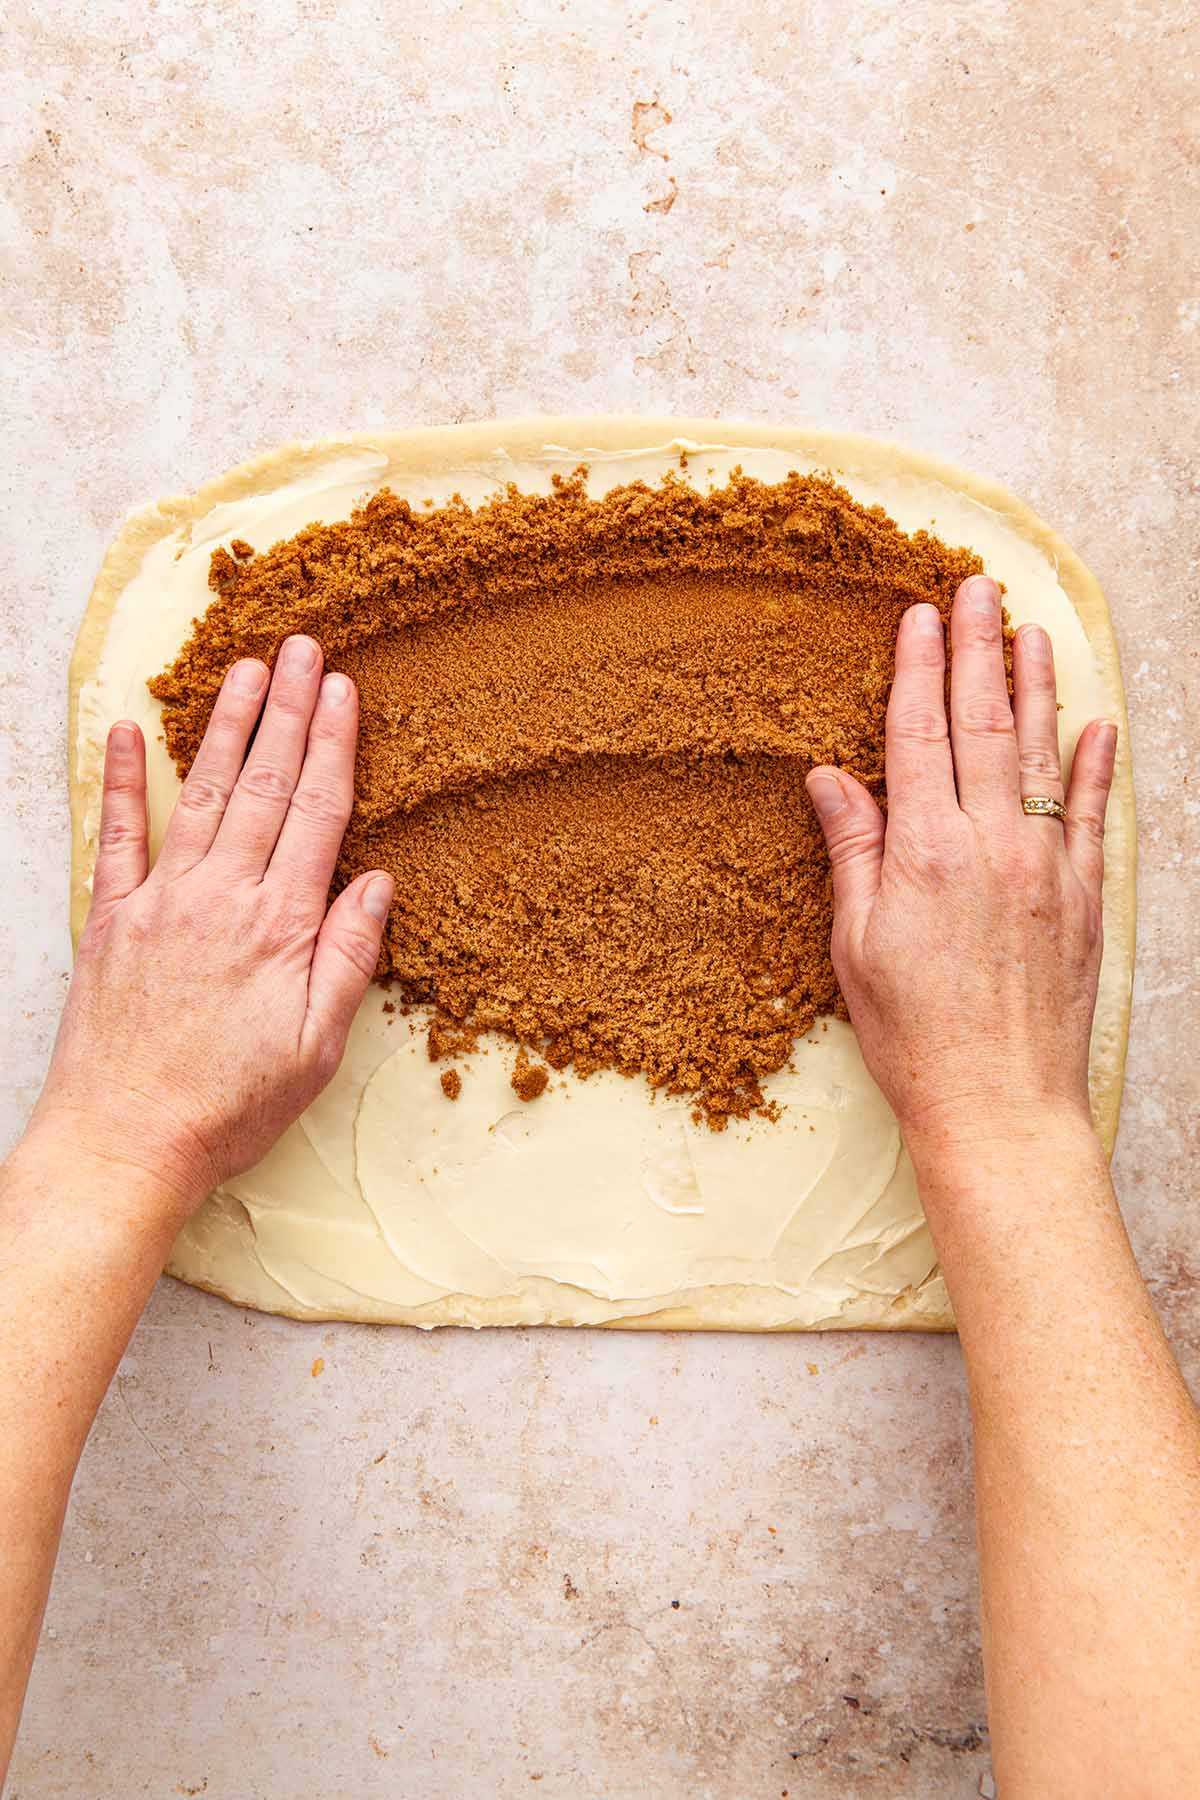 Hands spreading brown sugar and spice over a large rectangle of buttered dough.